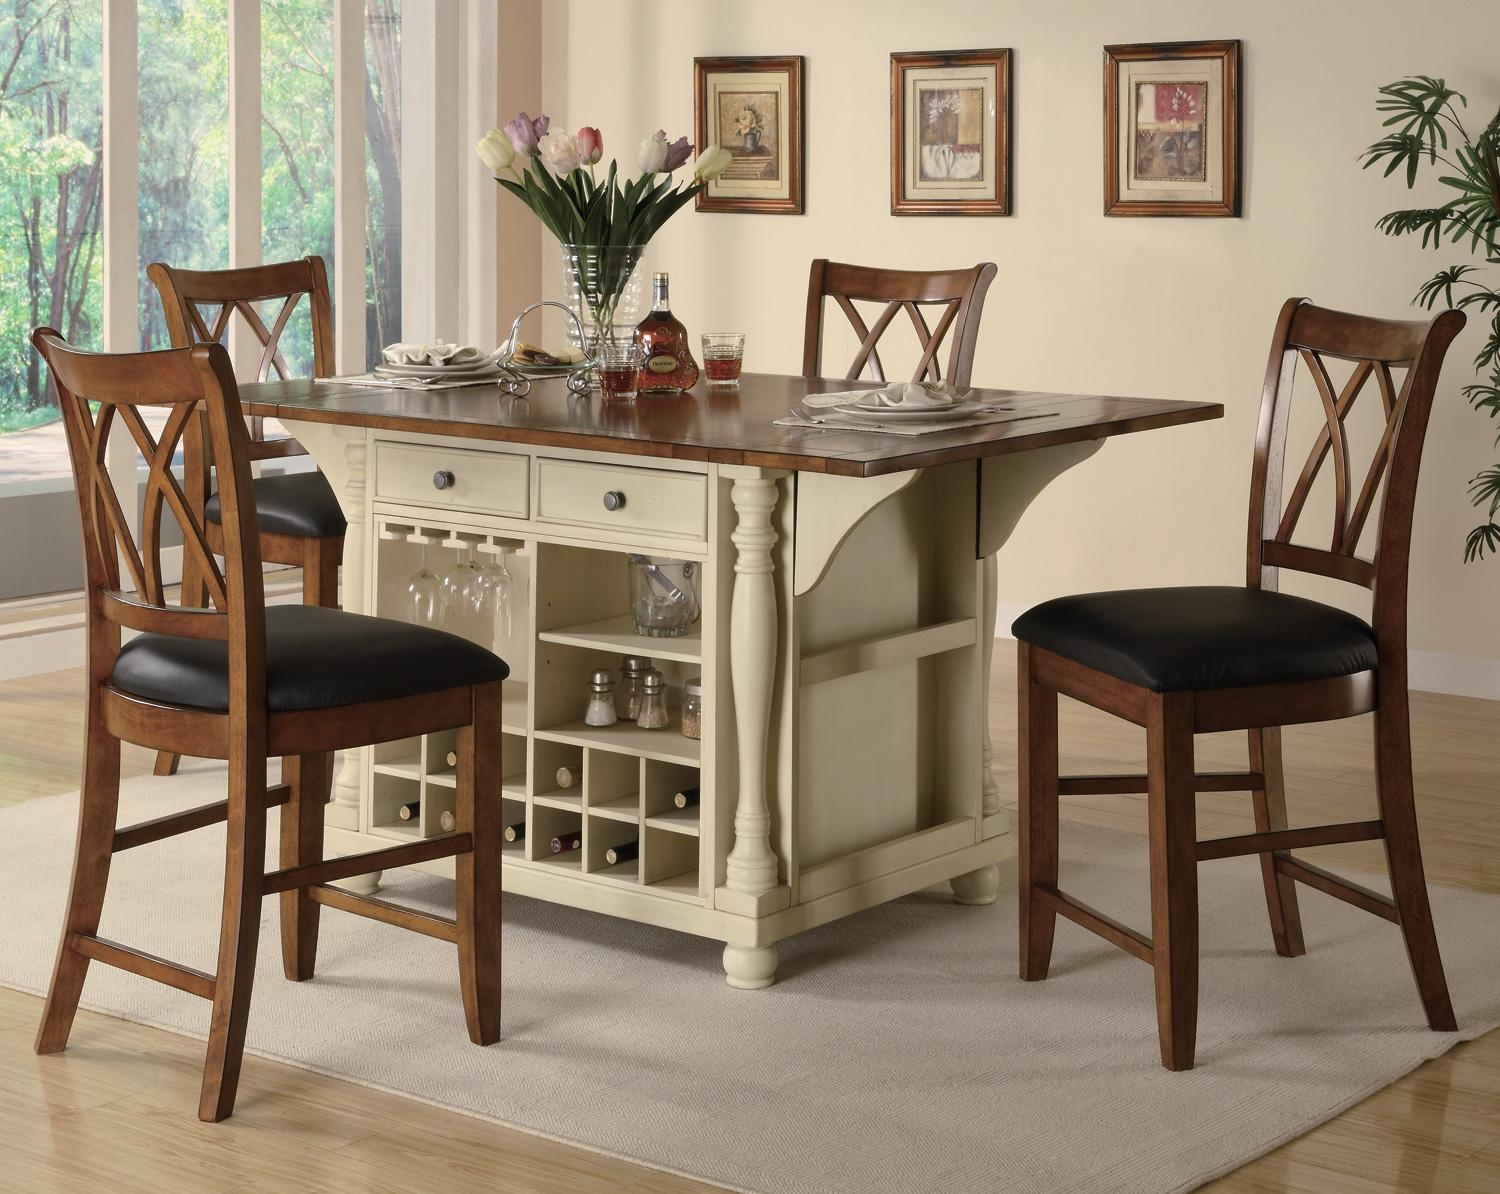 Counter High Kitchen Table Sets